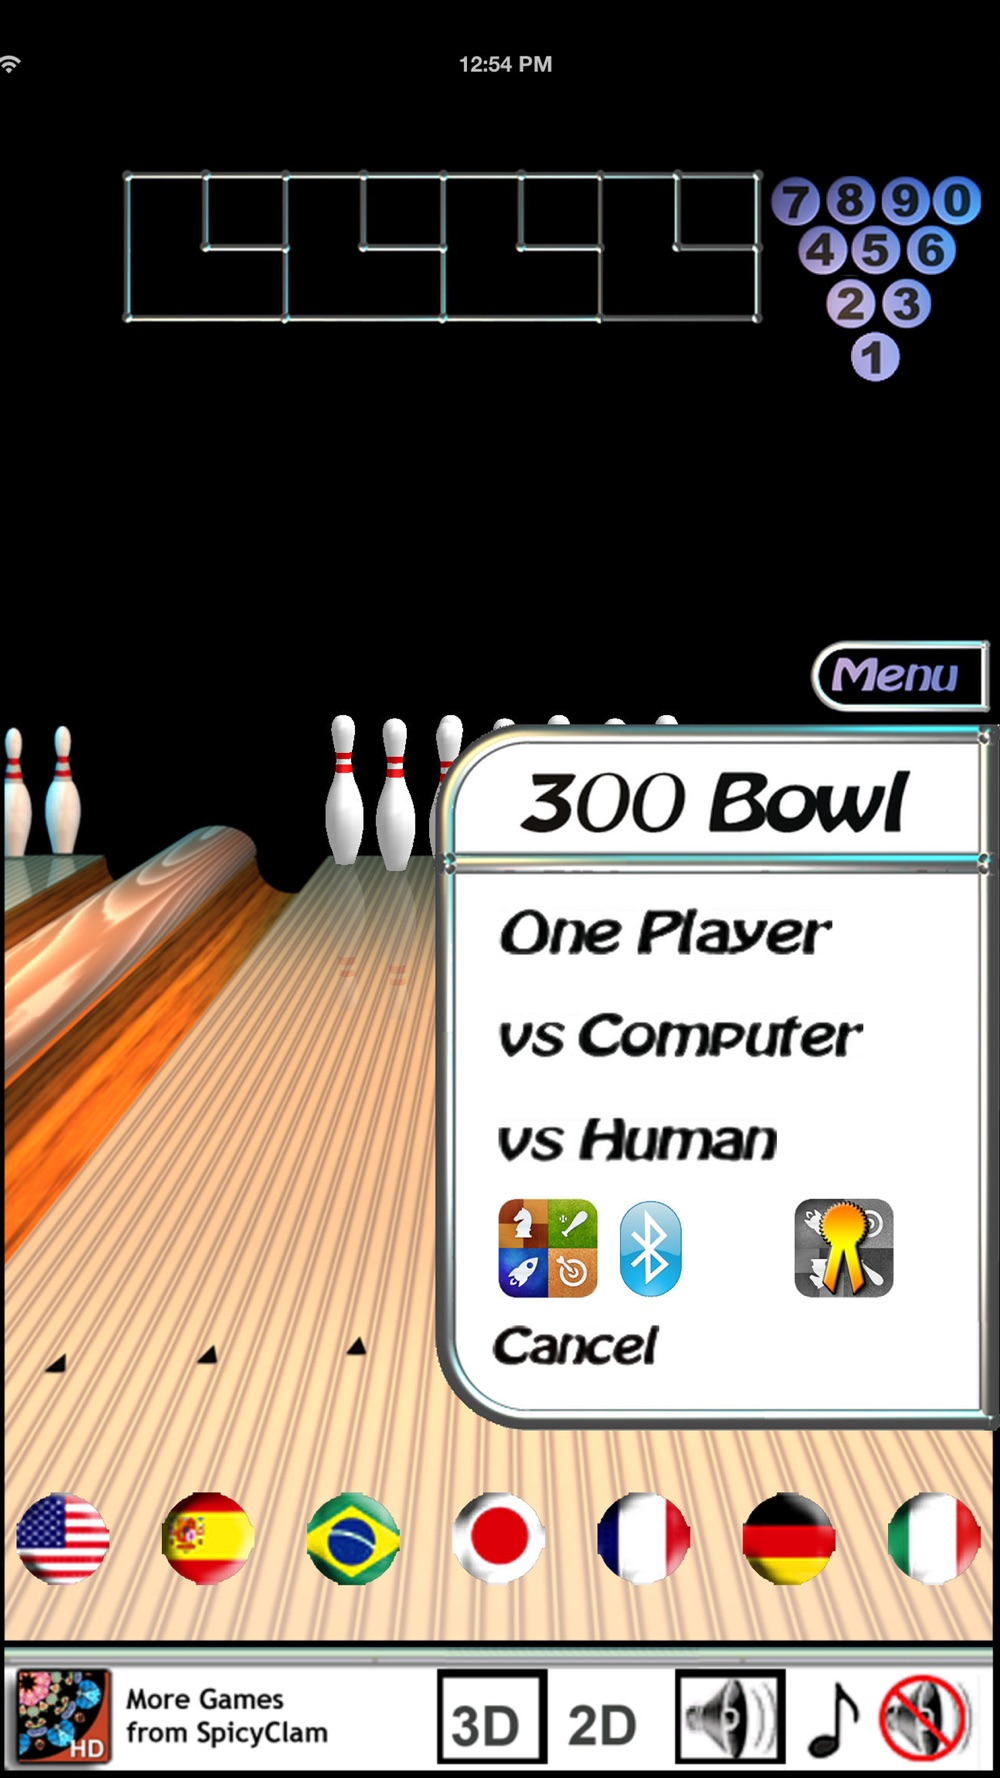 Hack tool for 300 Bowl LE